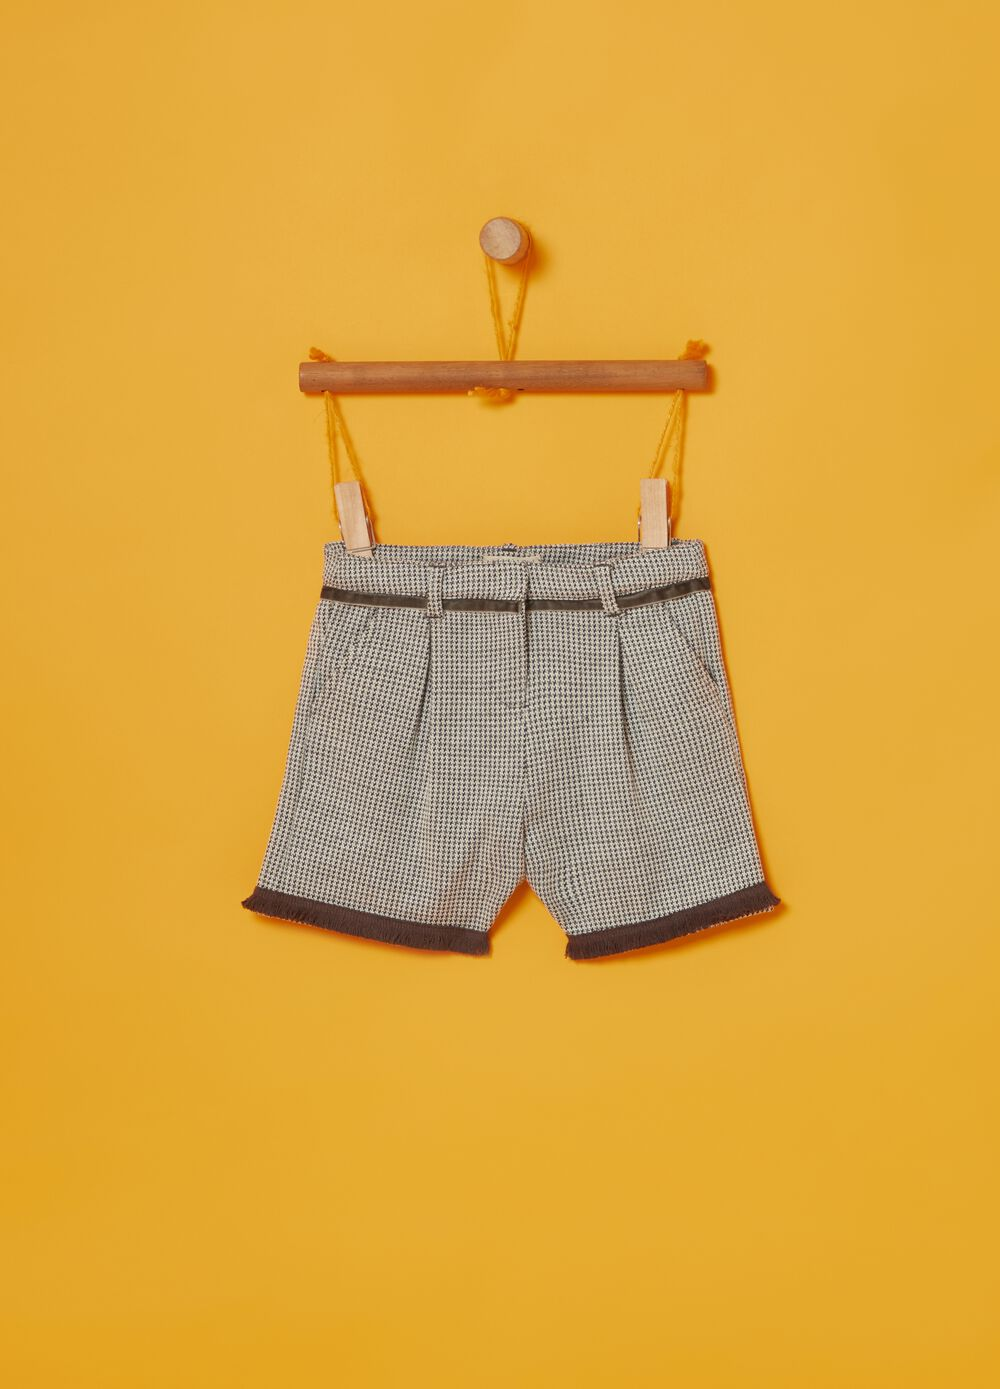 Shorts with hounds' tooth pattern and pockets